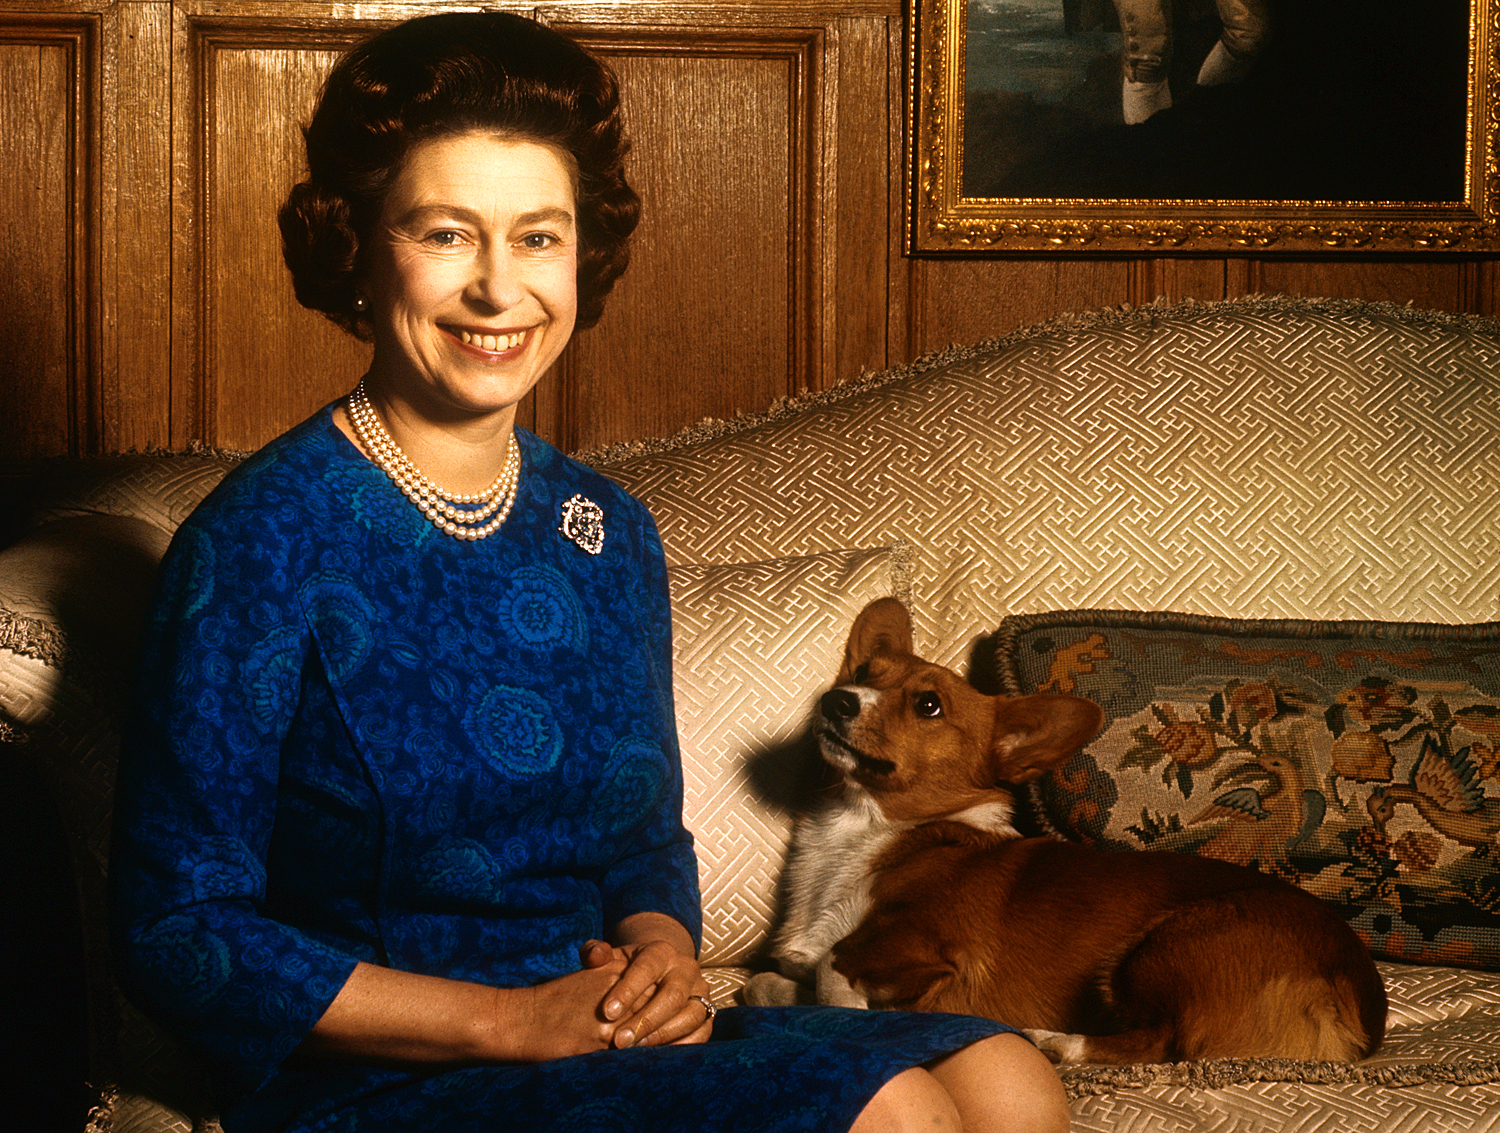 Queen Elizabeth II with Corgi